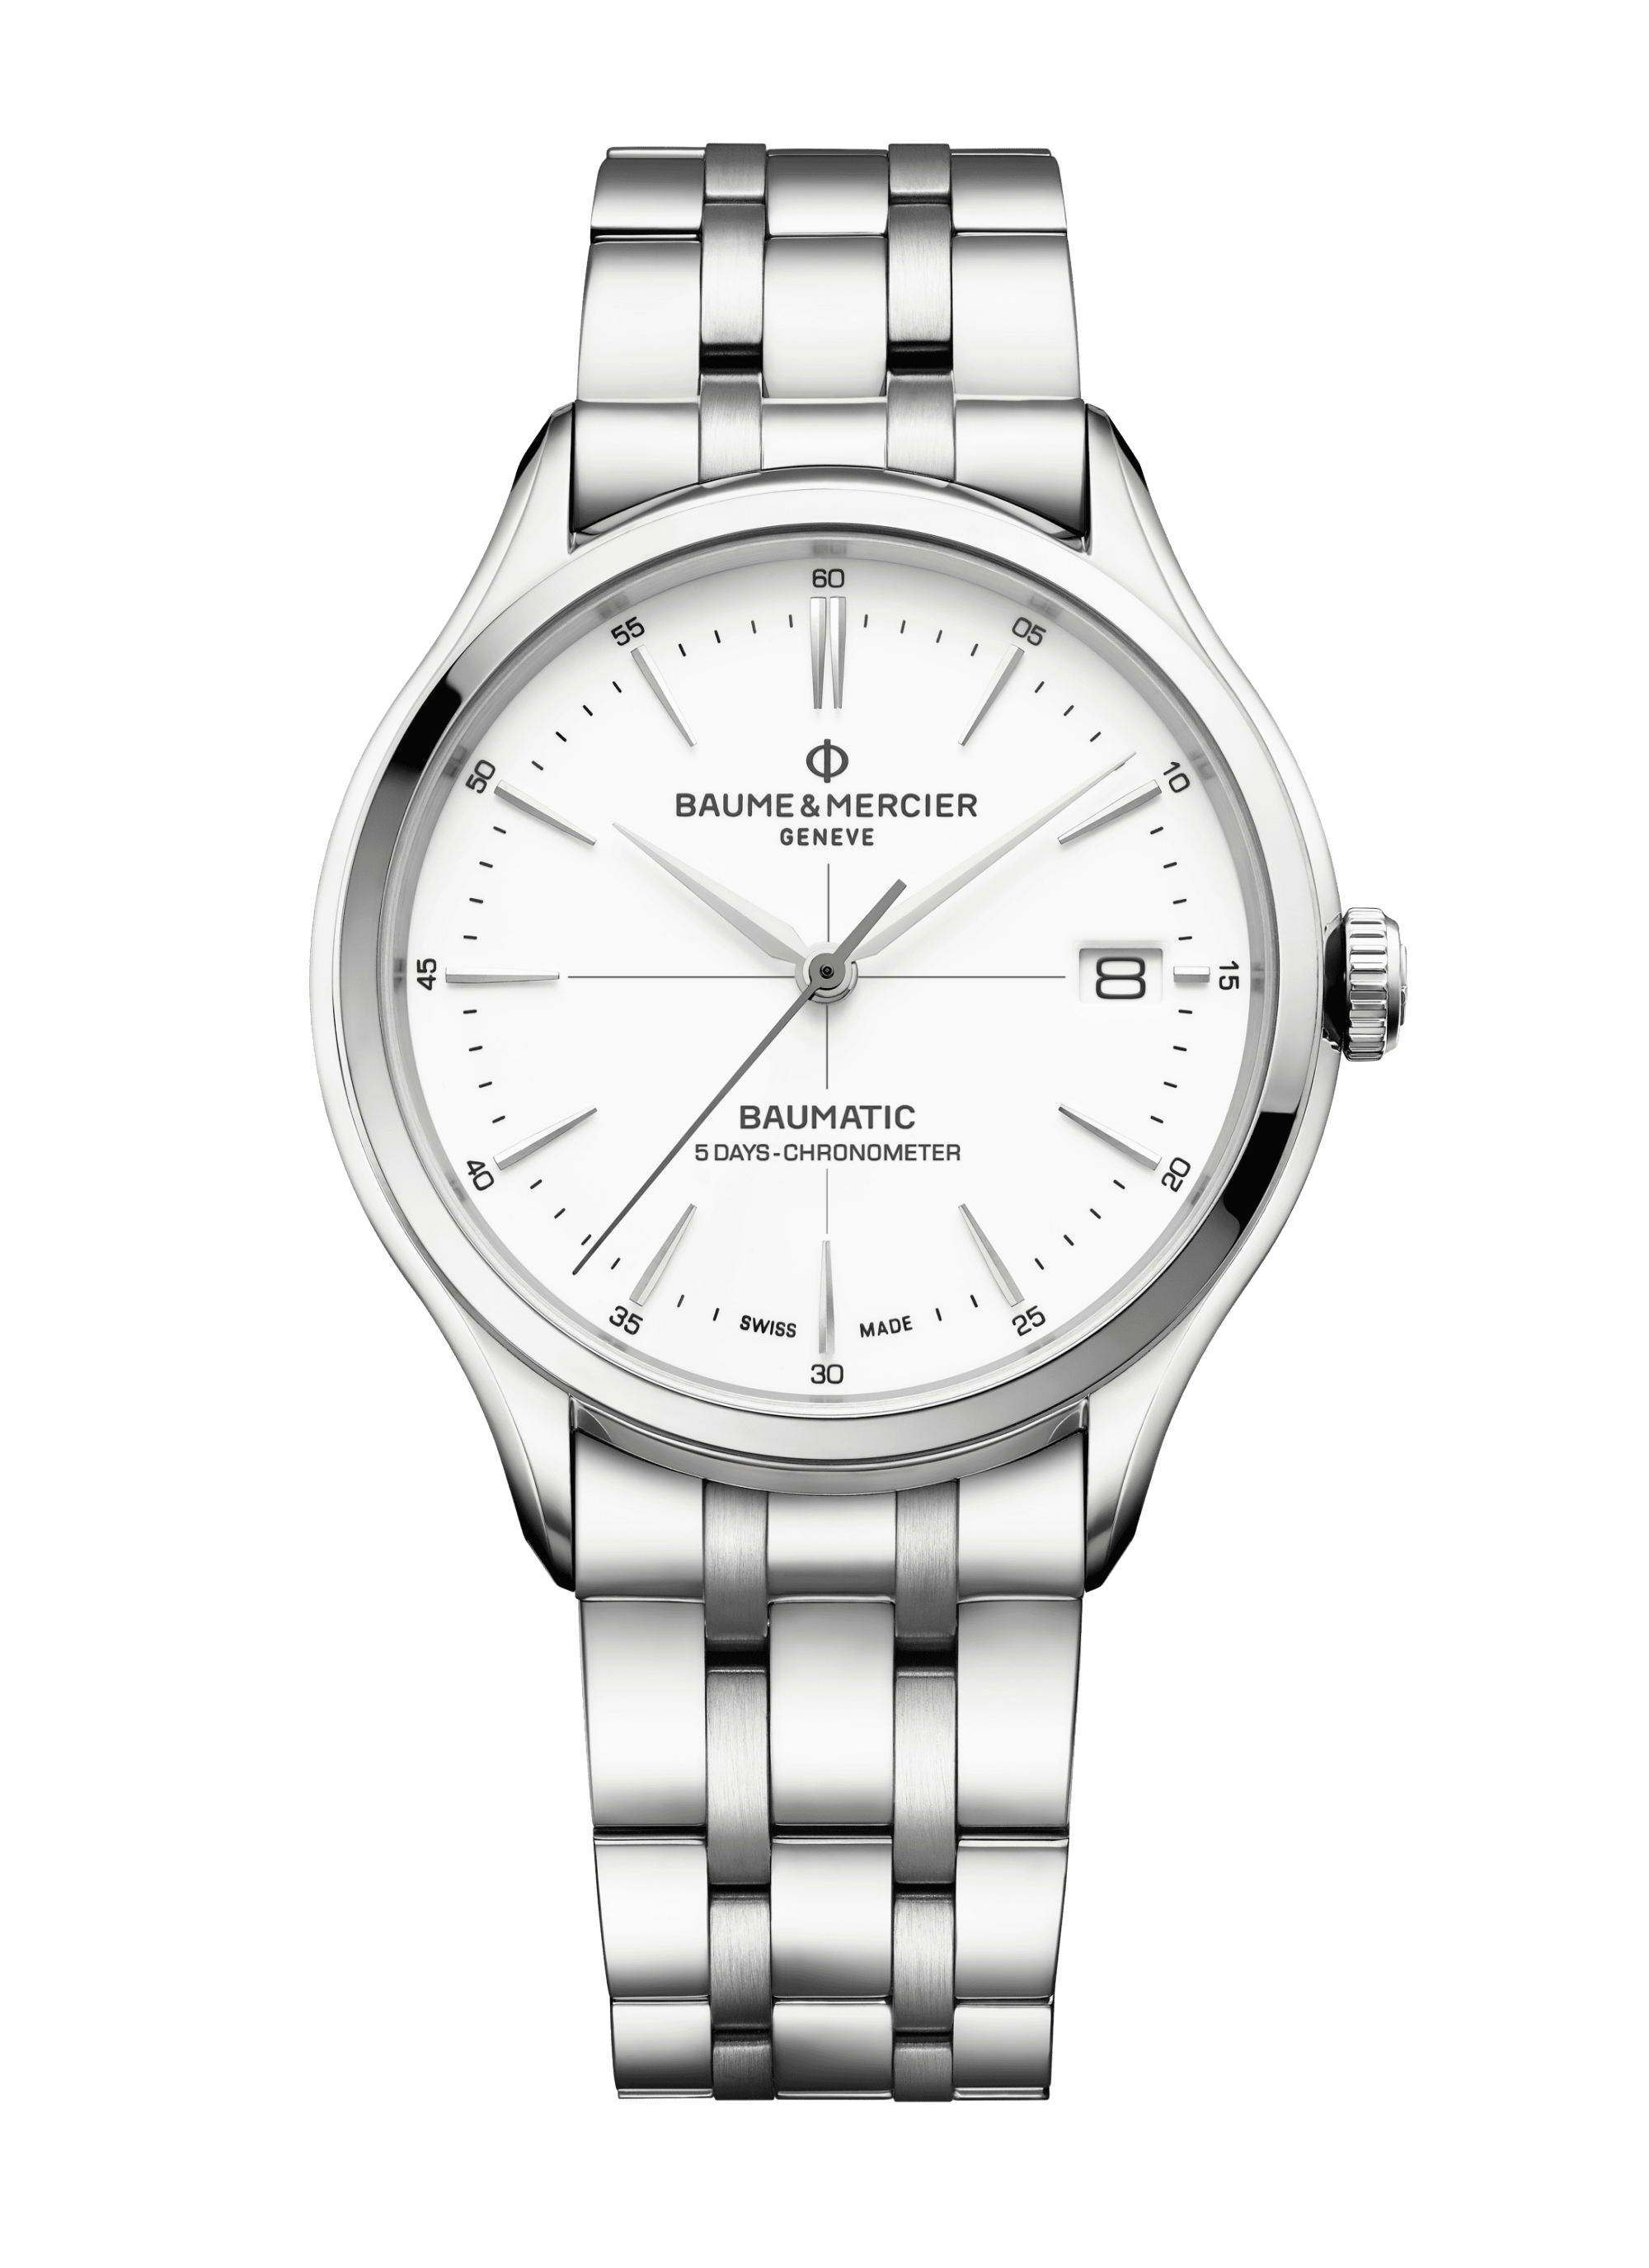 Clifton Baumatic 10505 Watch for men | Check Prices on Baume & Mercier Front -